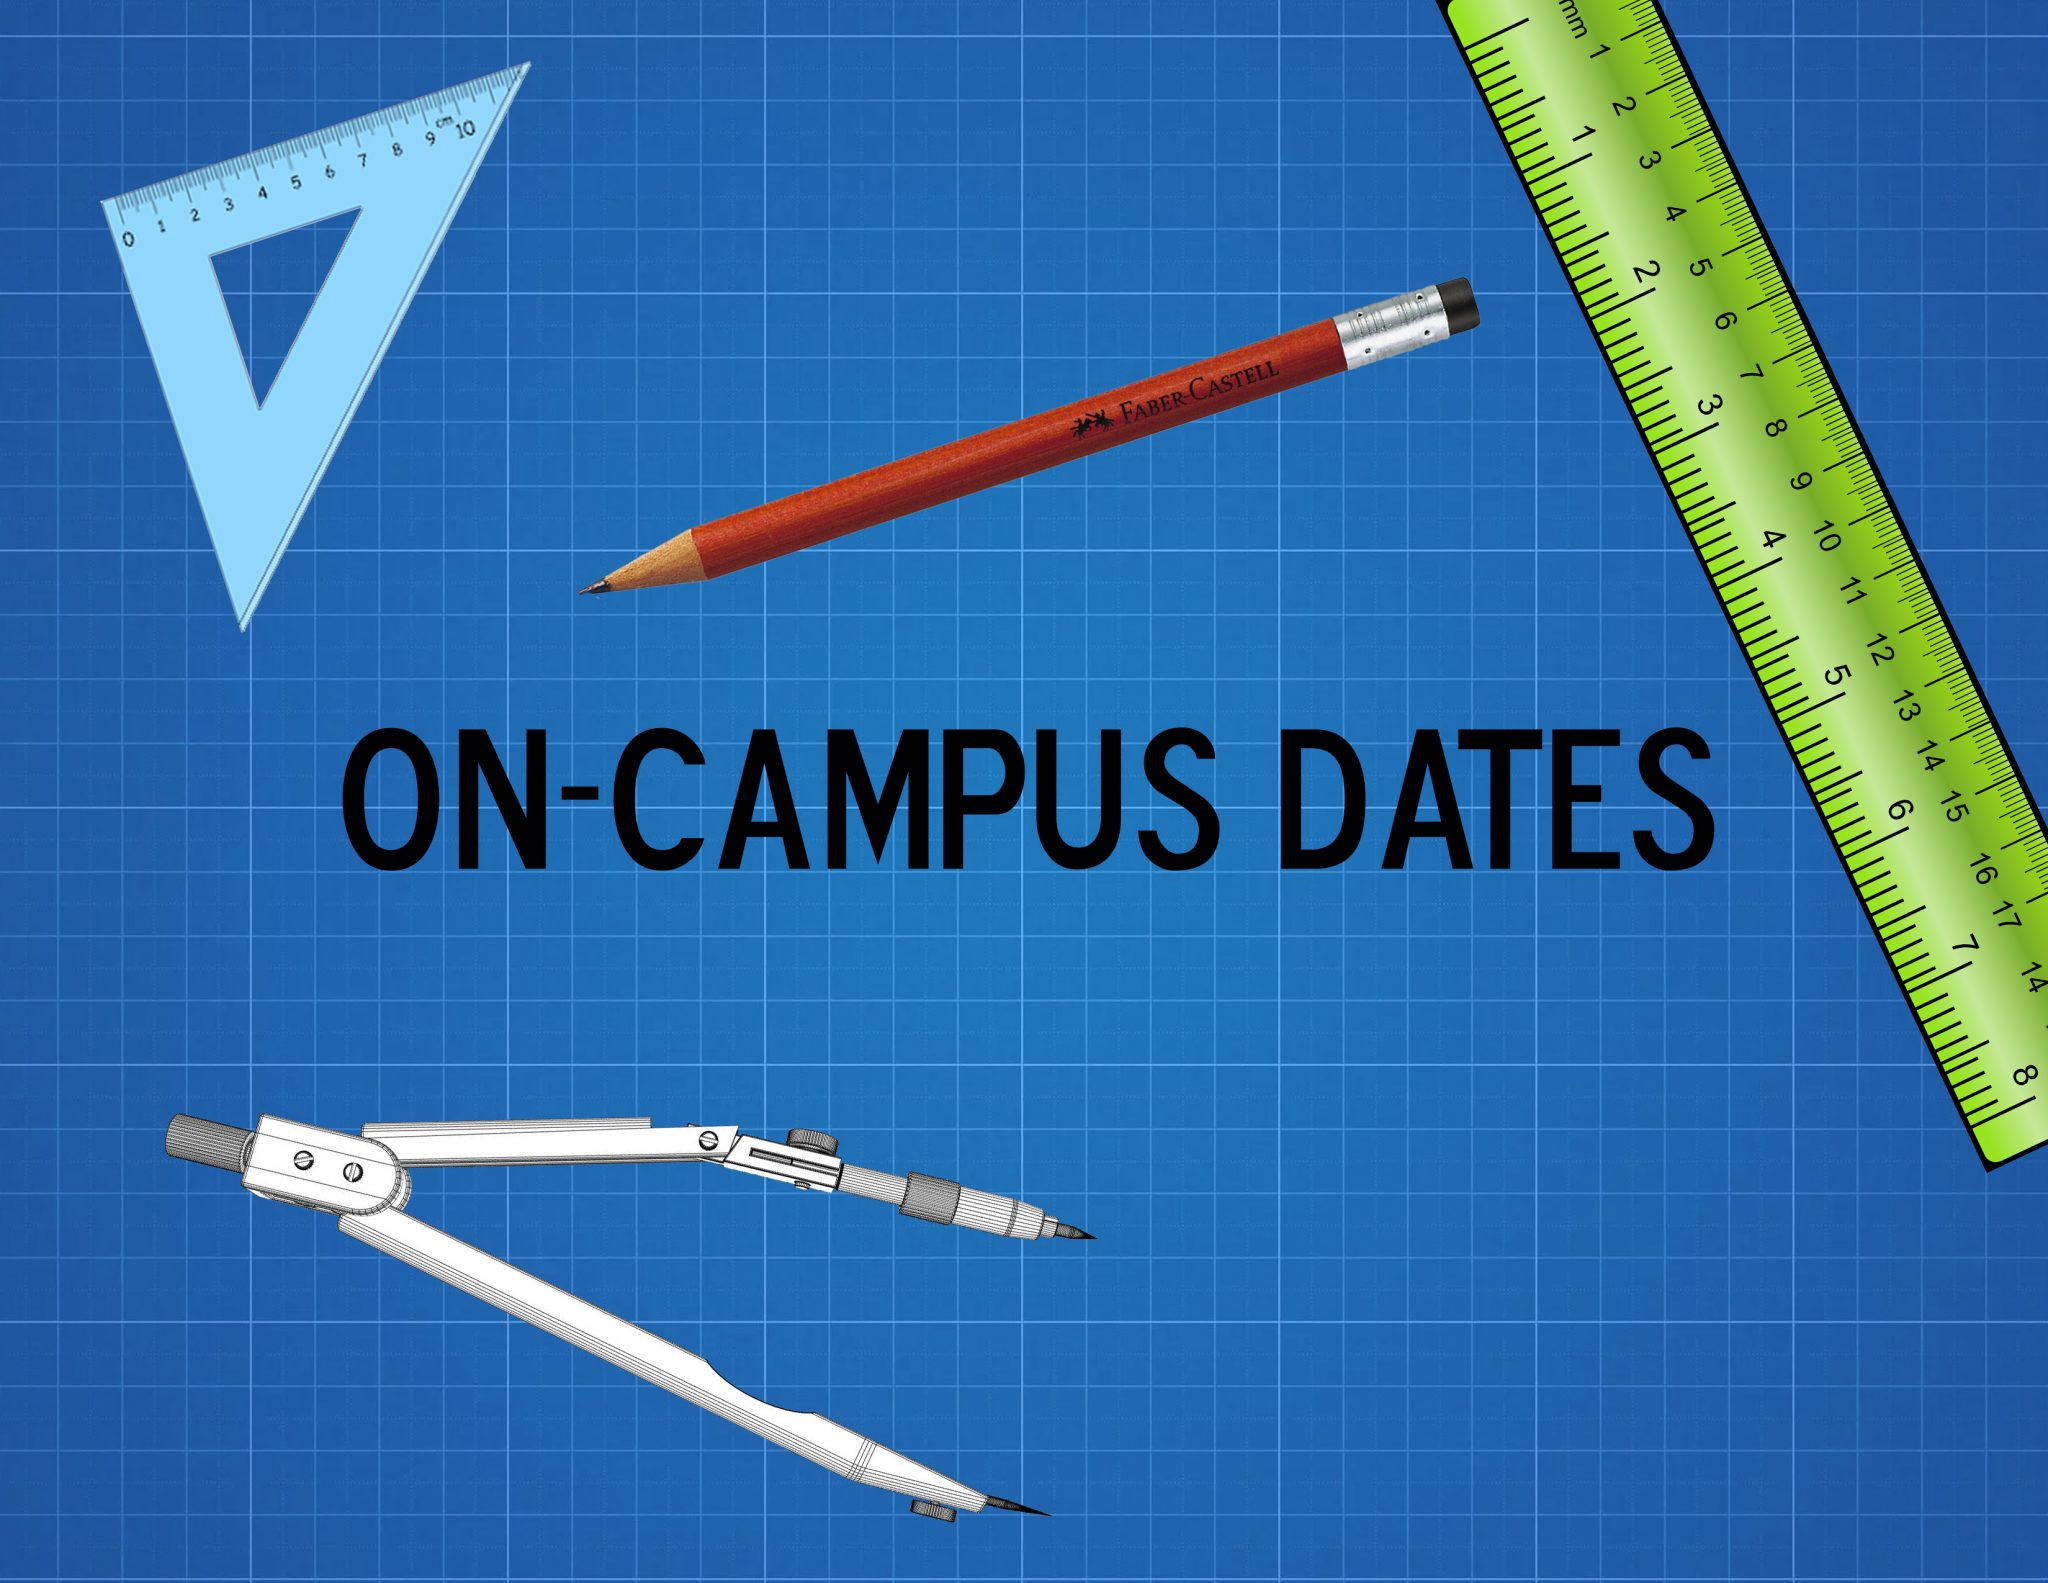 On Campus Dates